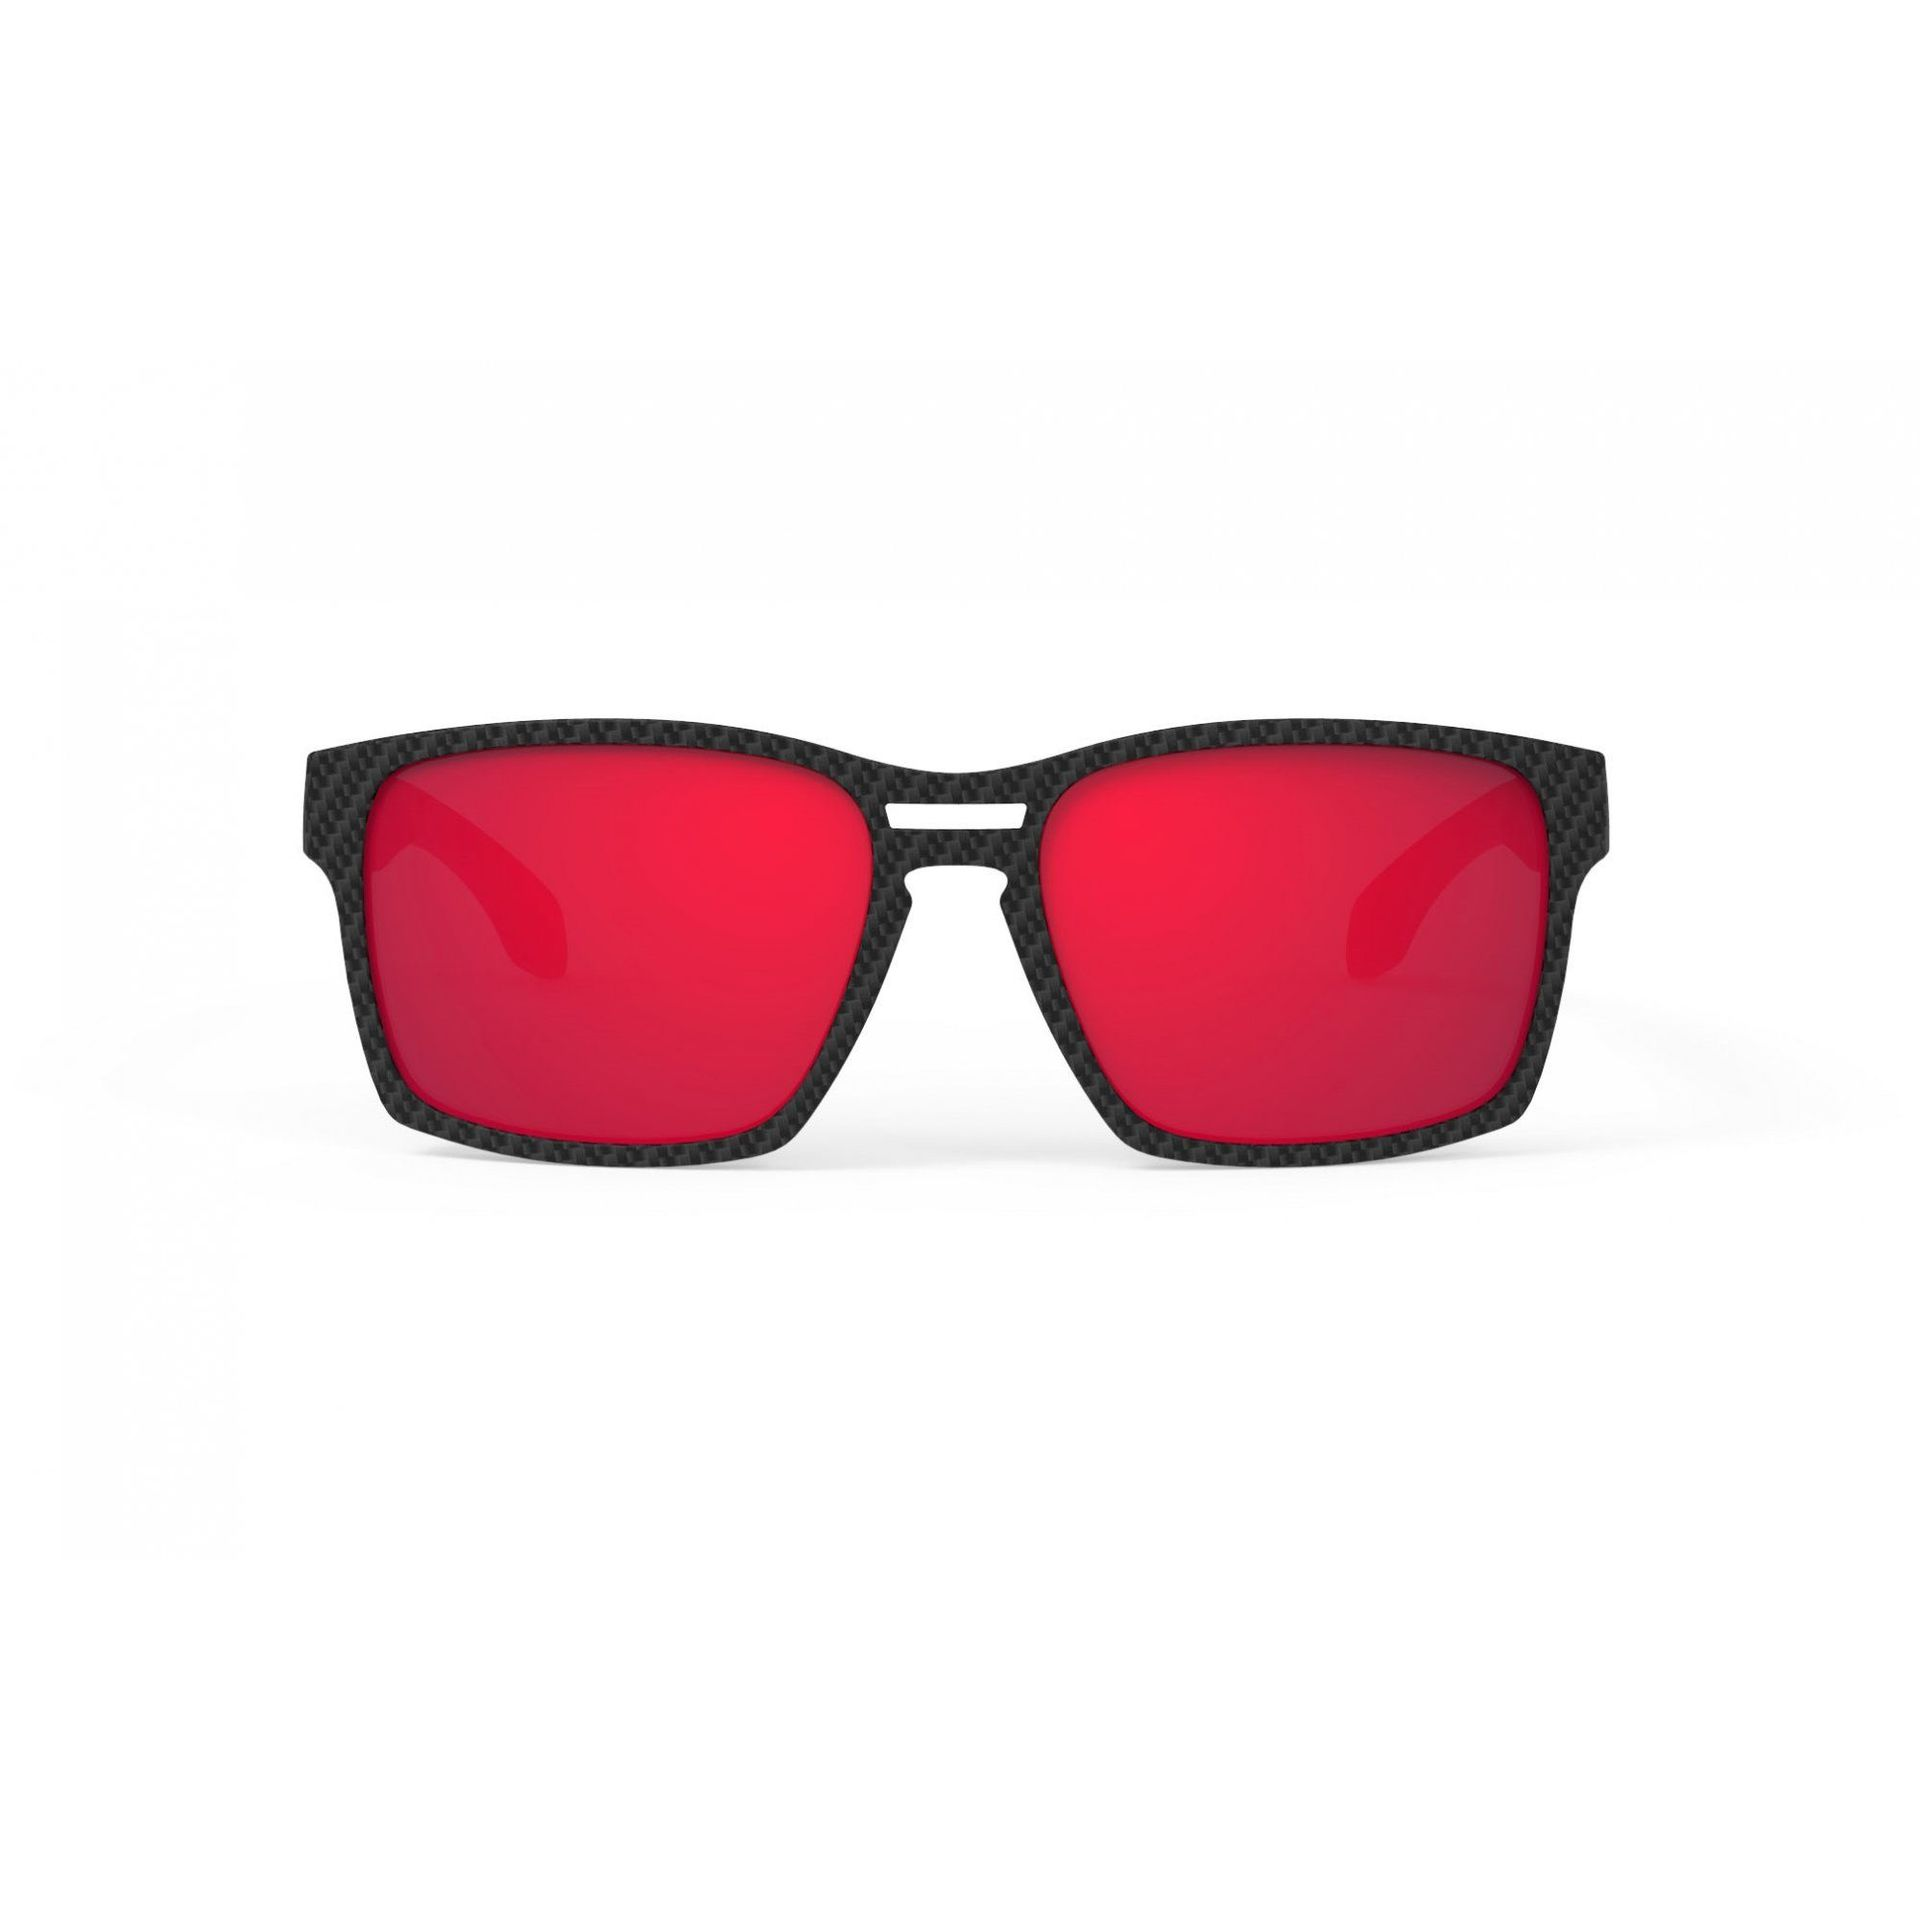 OKULARY RUDY PROJECT SPINAIR 57 CARBONIUM + ML RED SP573819 3